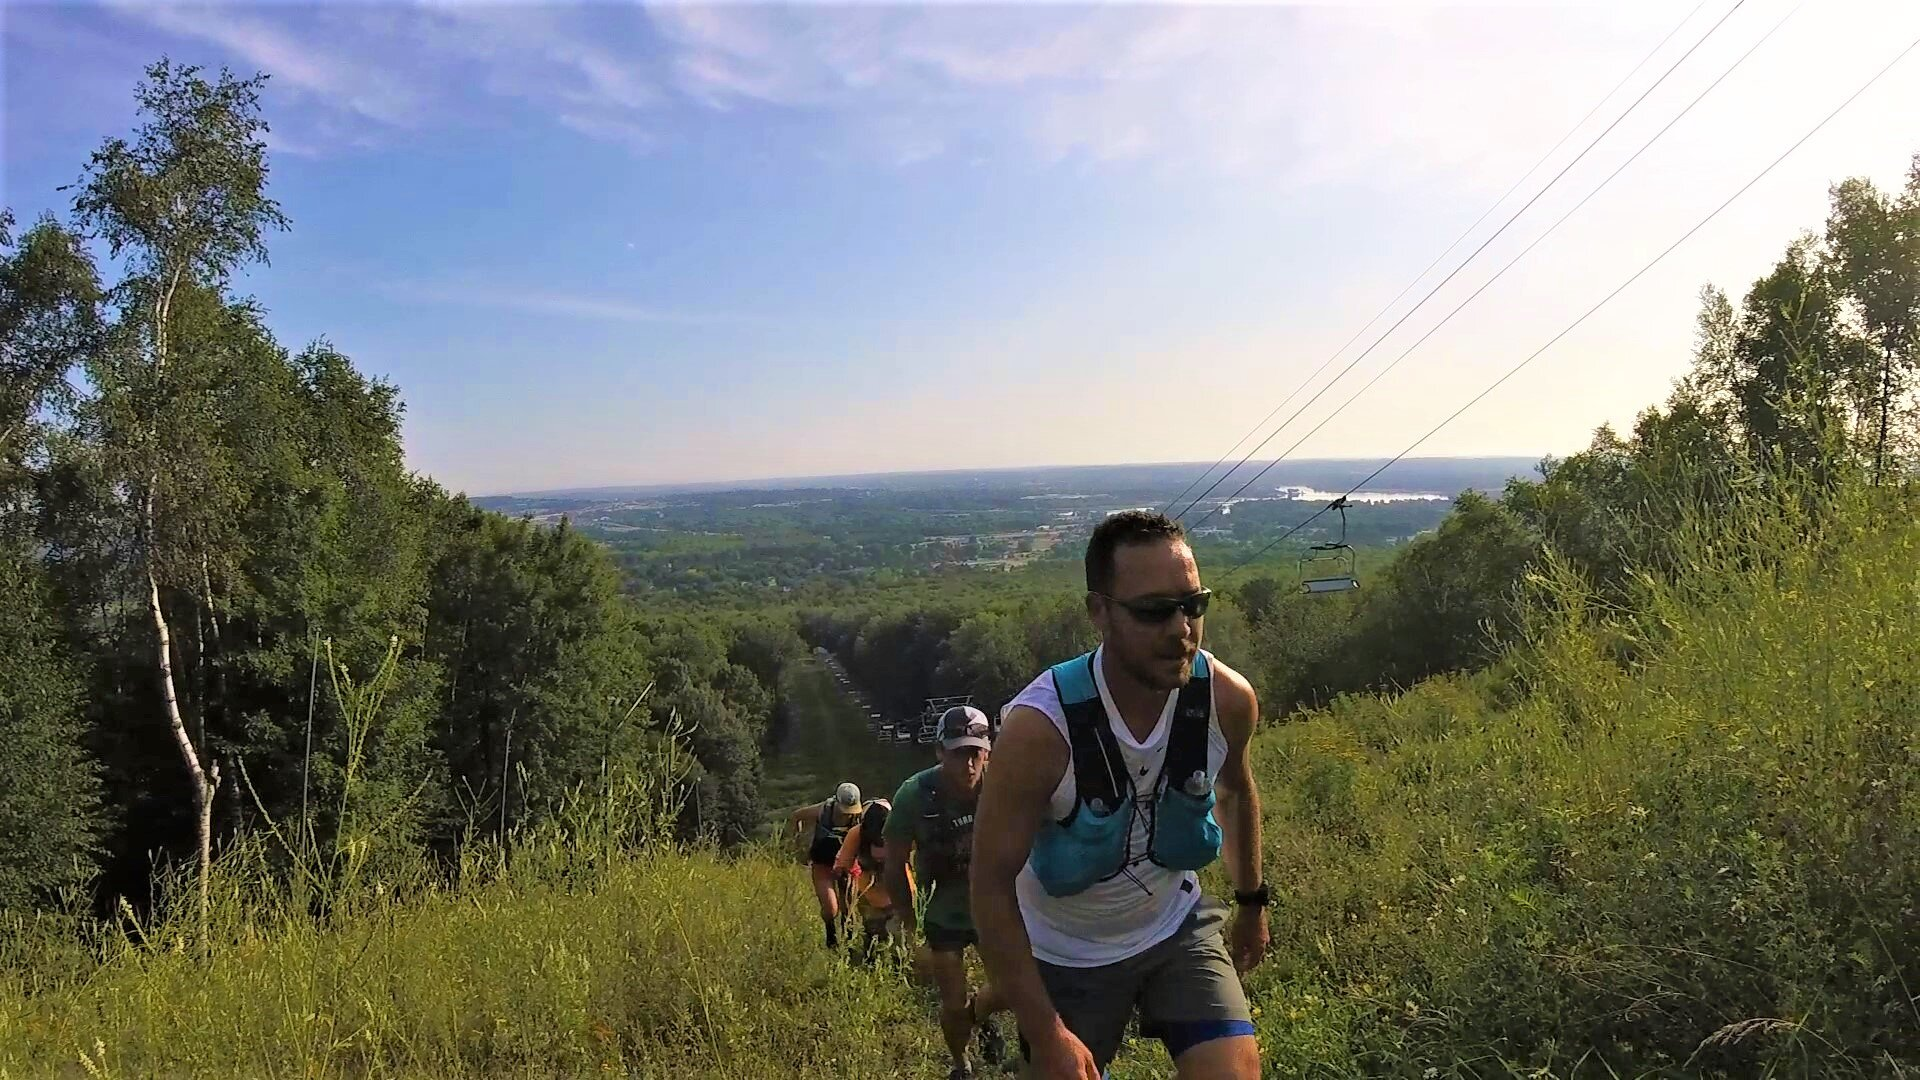 Both 15k and 50k racers will be rewarded with beautiful views of Wausau at peak fall colors.